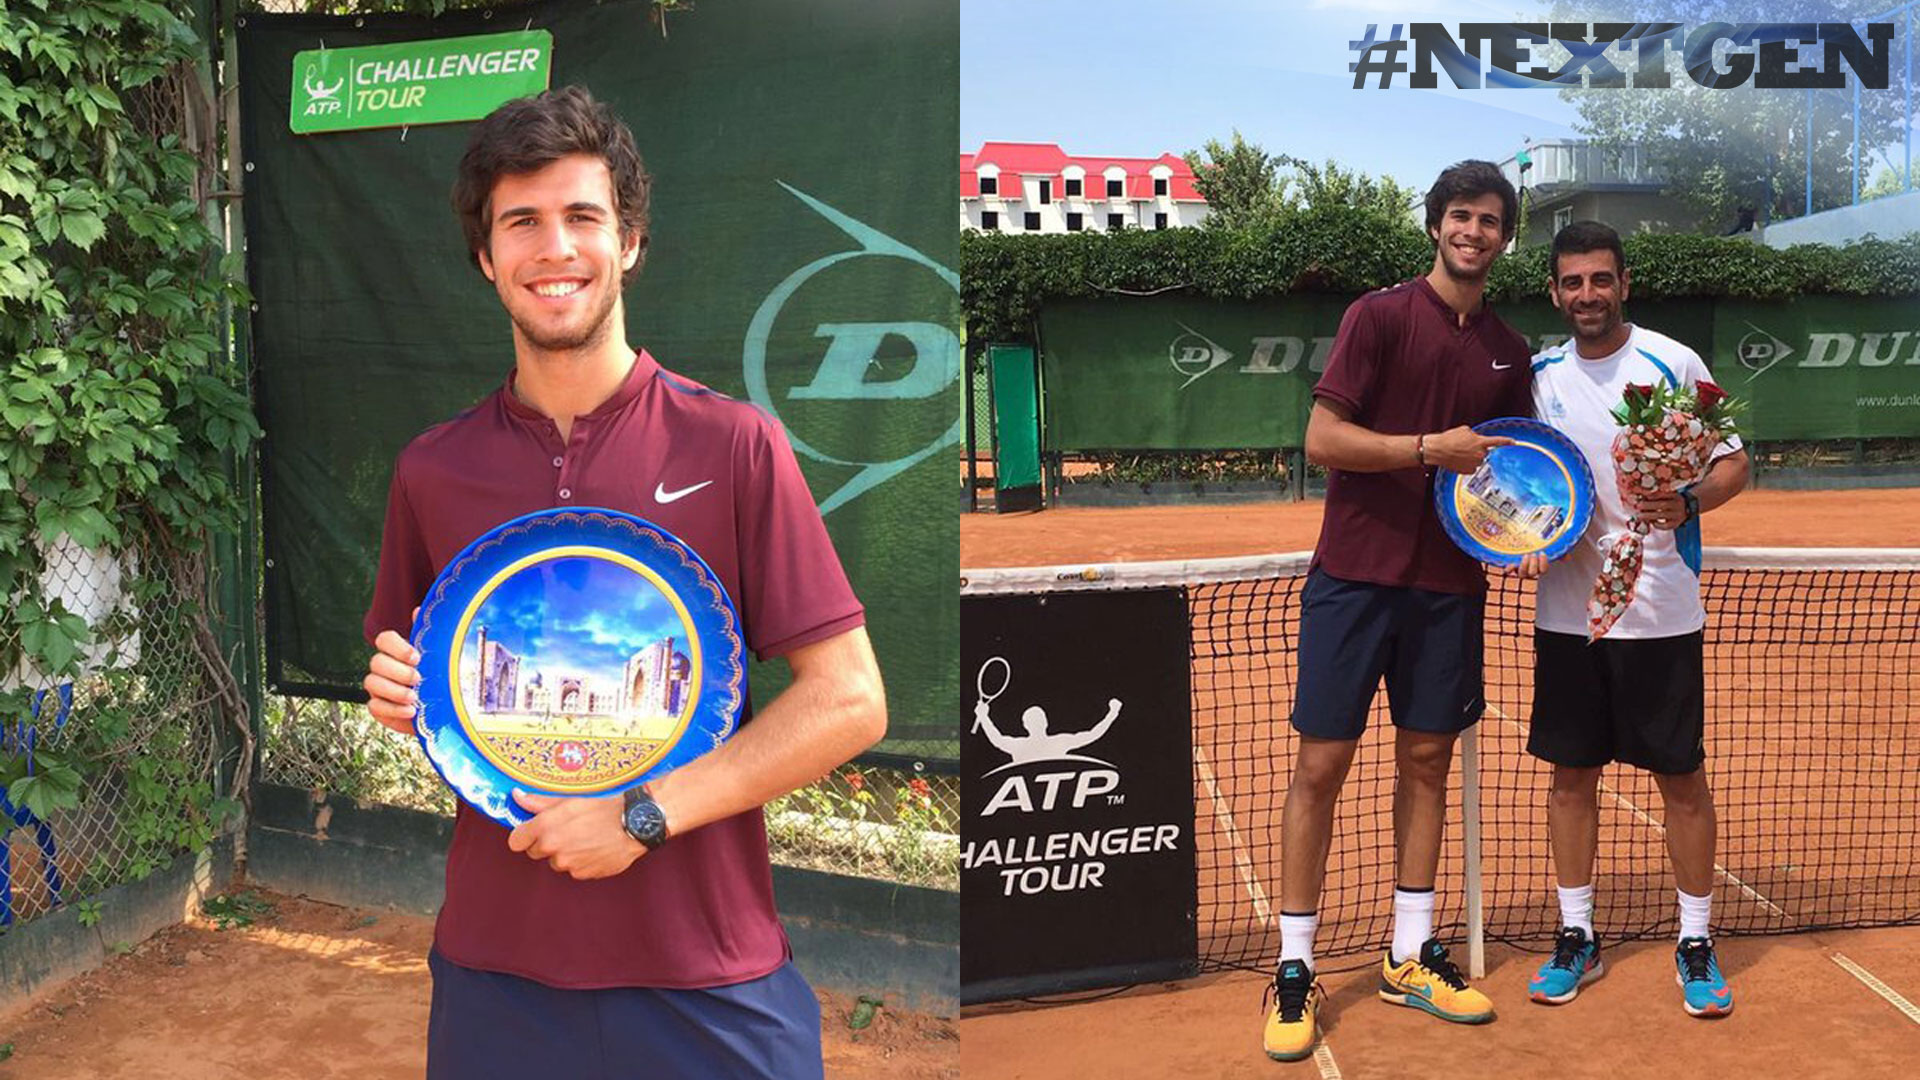 #NextGen star Karen Khachanov won his first ATP Challenger Tour title of the year in Samarkand.